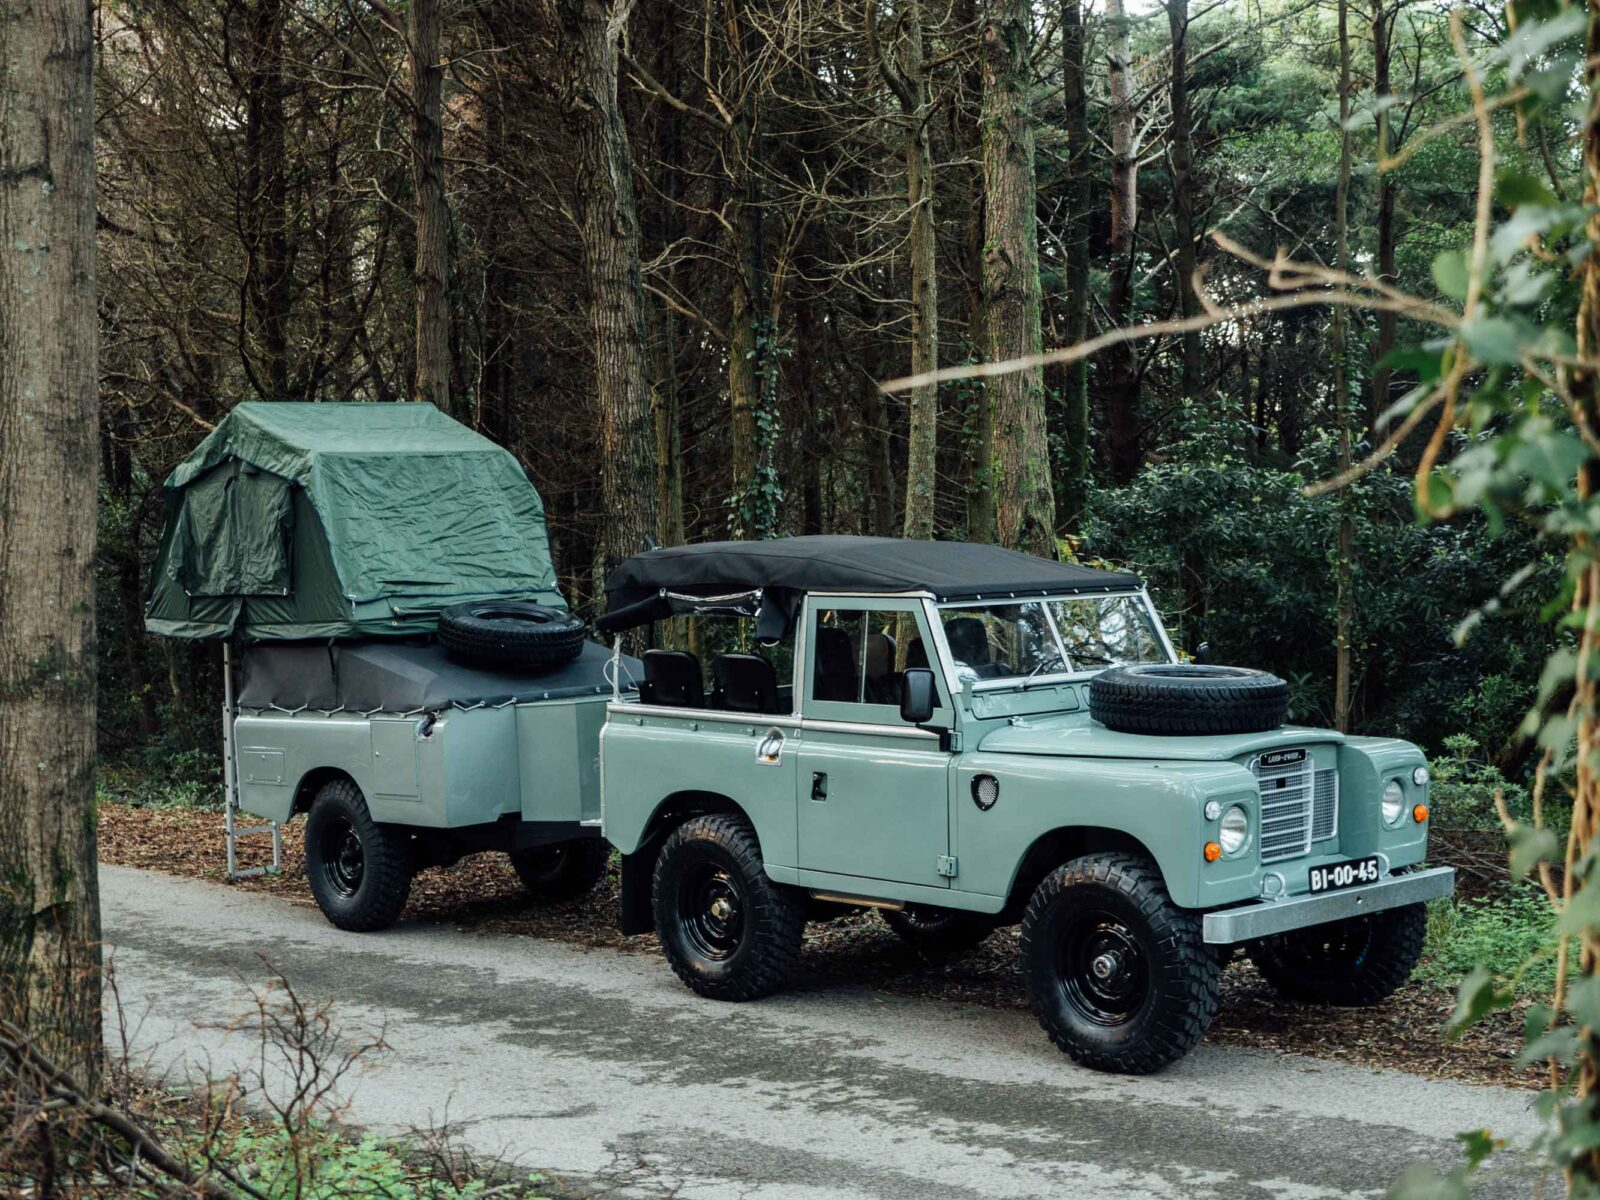 Land Rover 1600x1200 - Land Rover Series III Adventure Rig